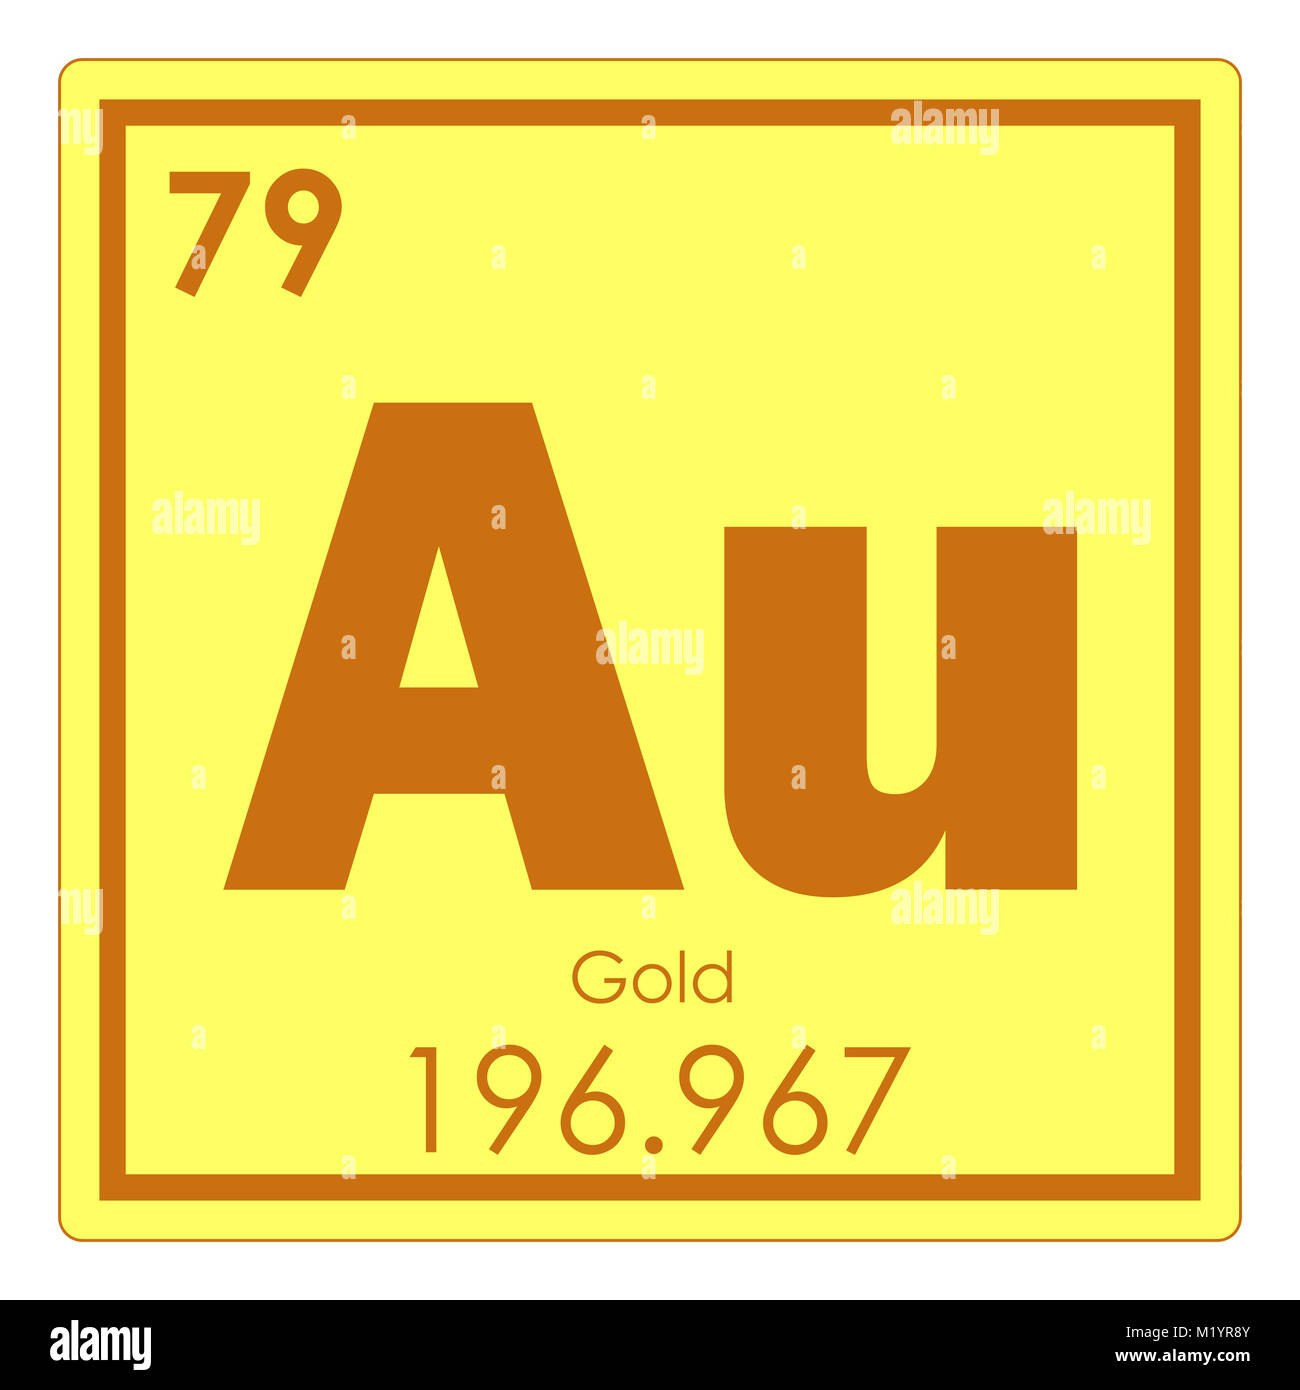 Gold chemical element periodic table science symbol stock photo gold chemical element periodic table science symbol urtaz Gallery